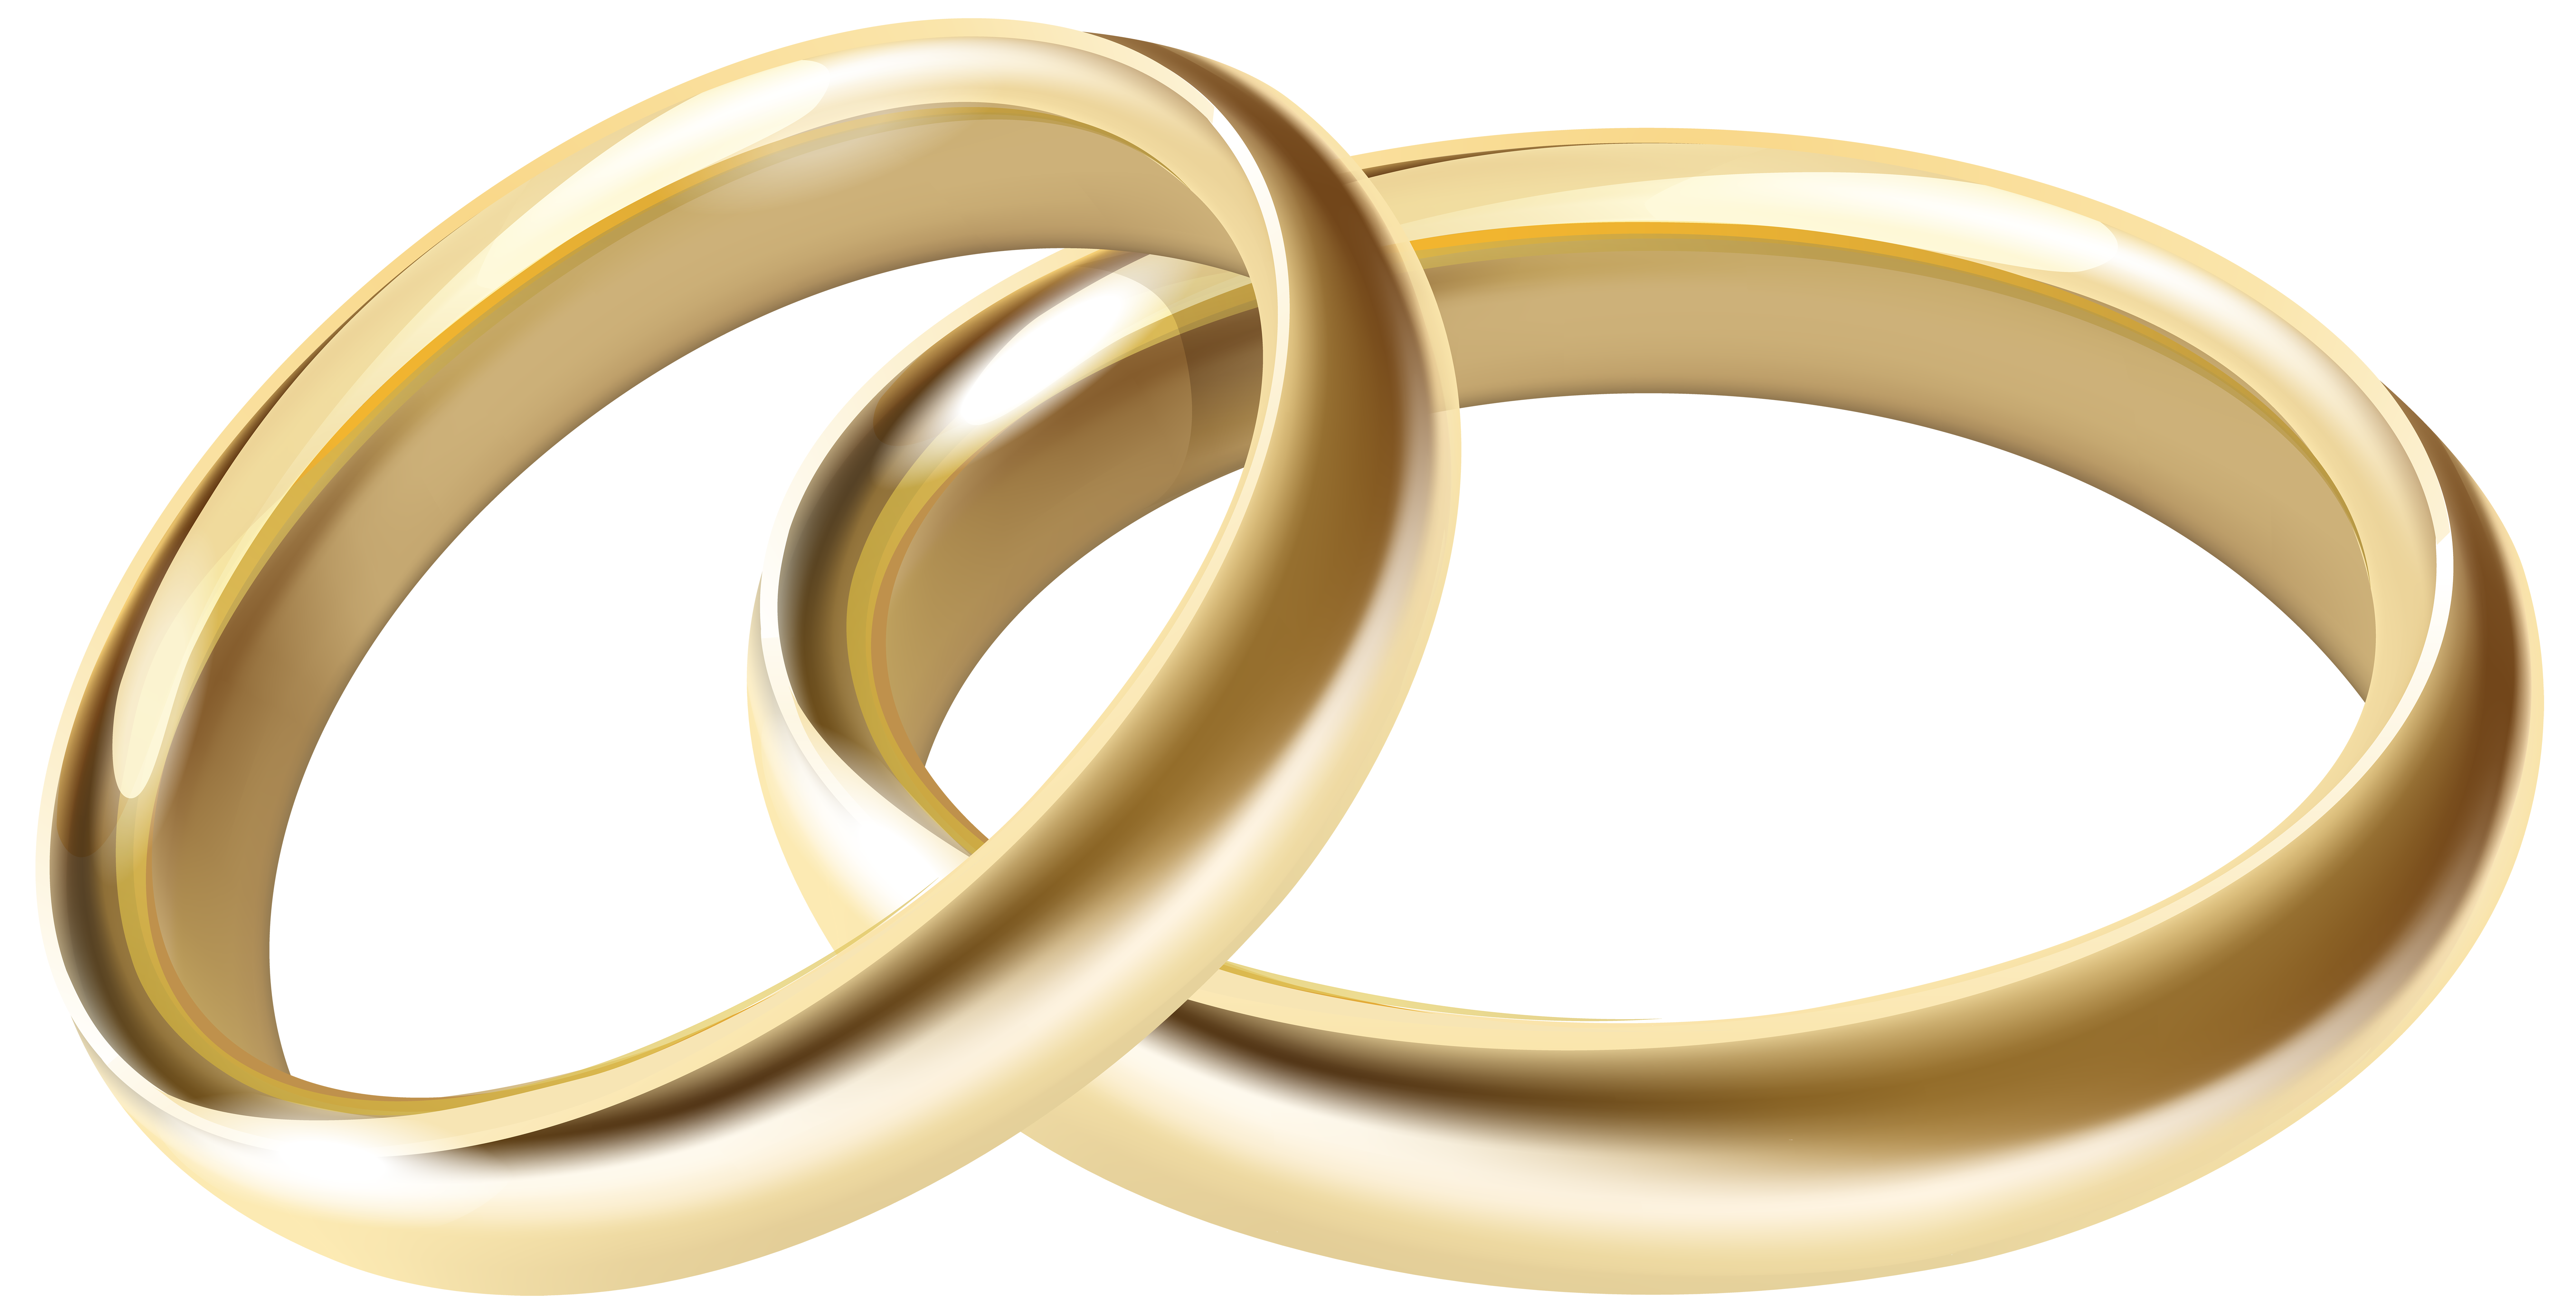 Magnificent rings png elaboration. Jewelry clipart wedding ring